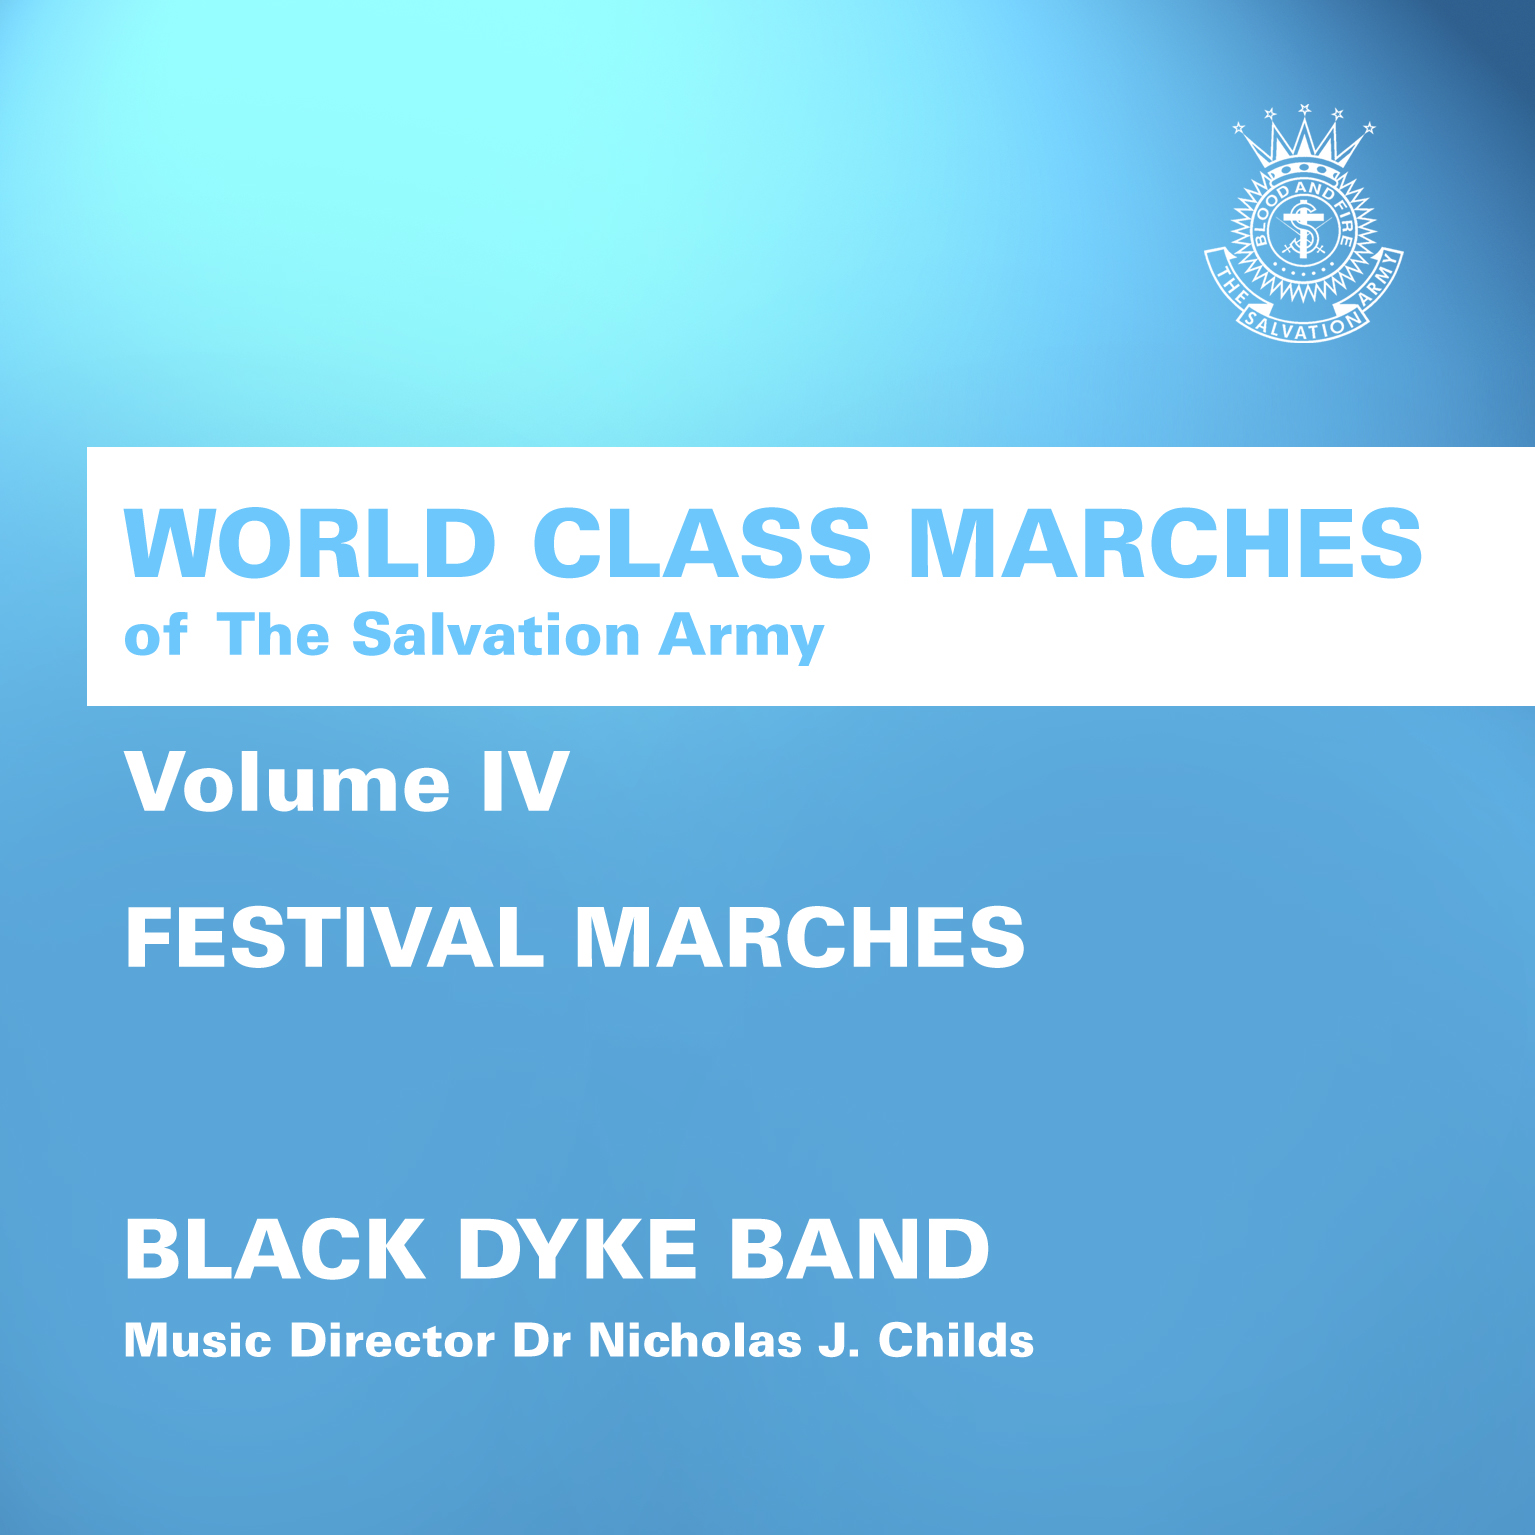 World Class Marches of The Salvation Army Volume IV - Download